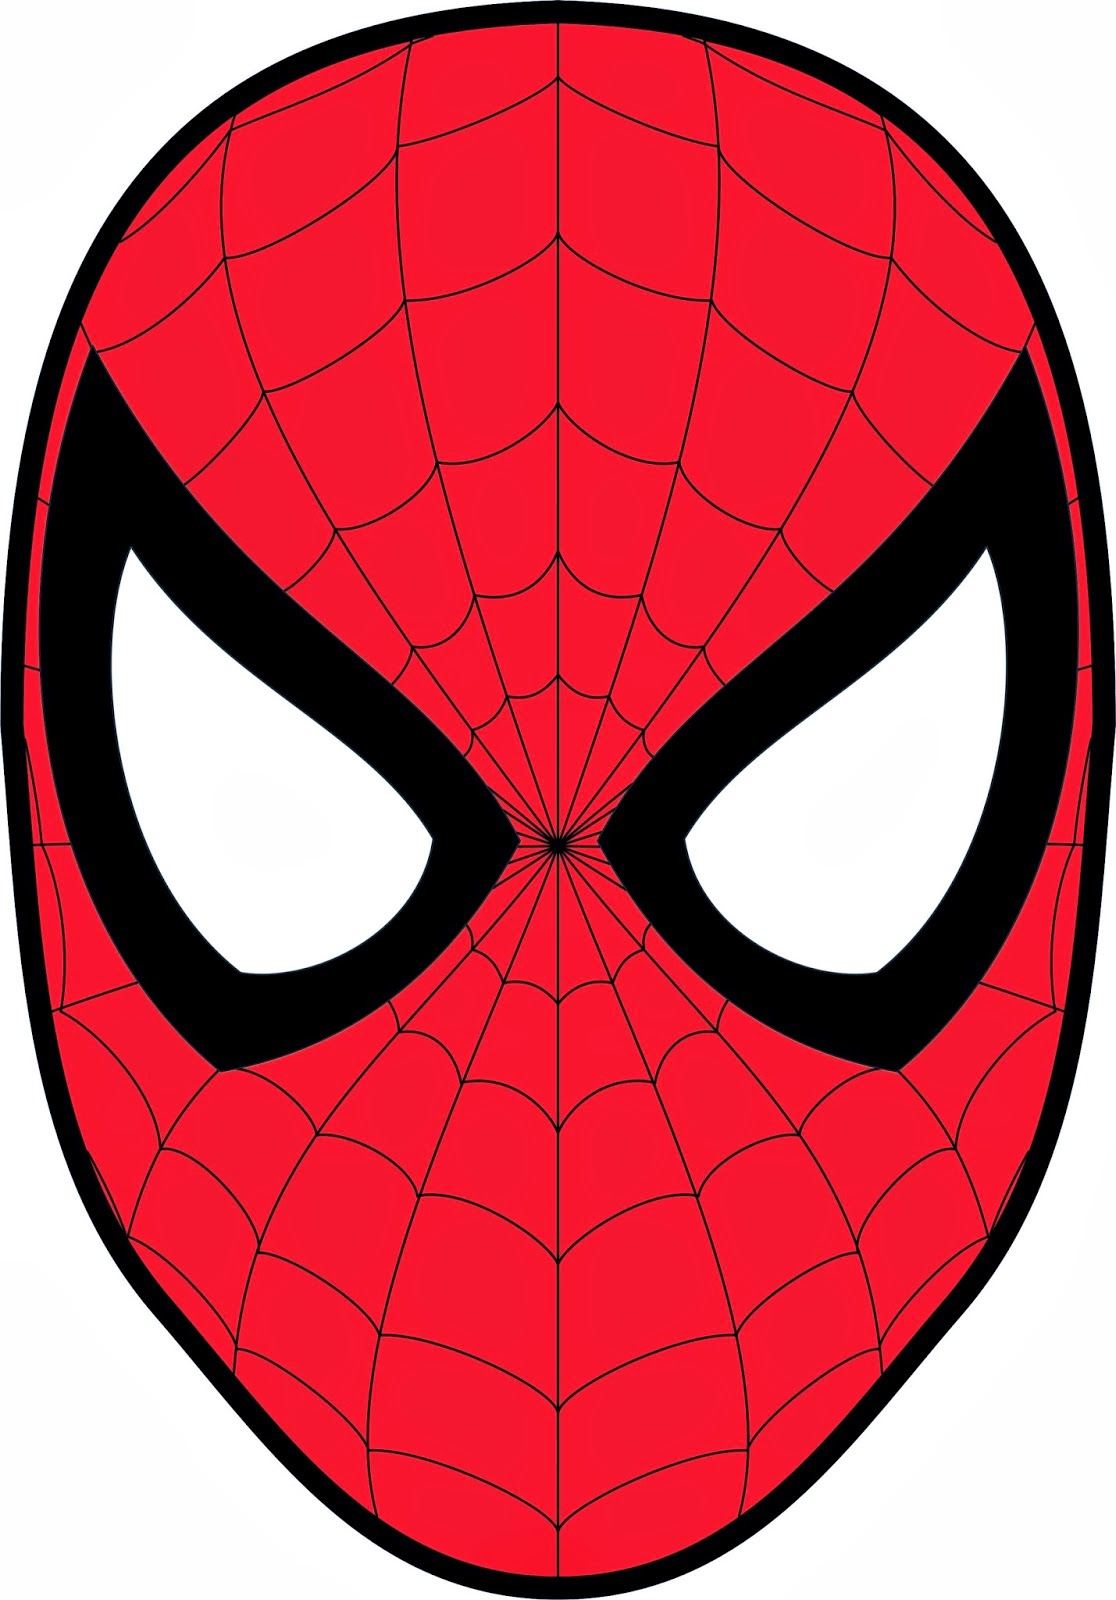 Spiderman: Free Printable Kit. - Oh My Fiesta! For Geeks - Free Printable Spiderman Pictures